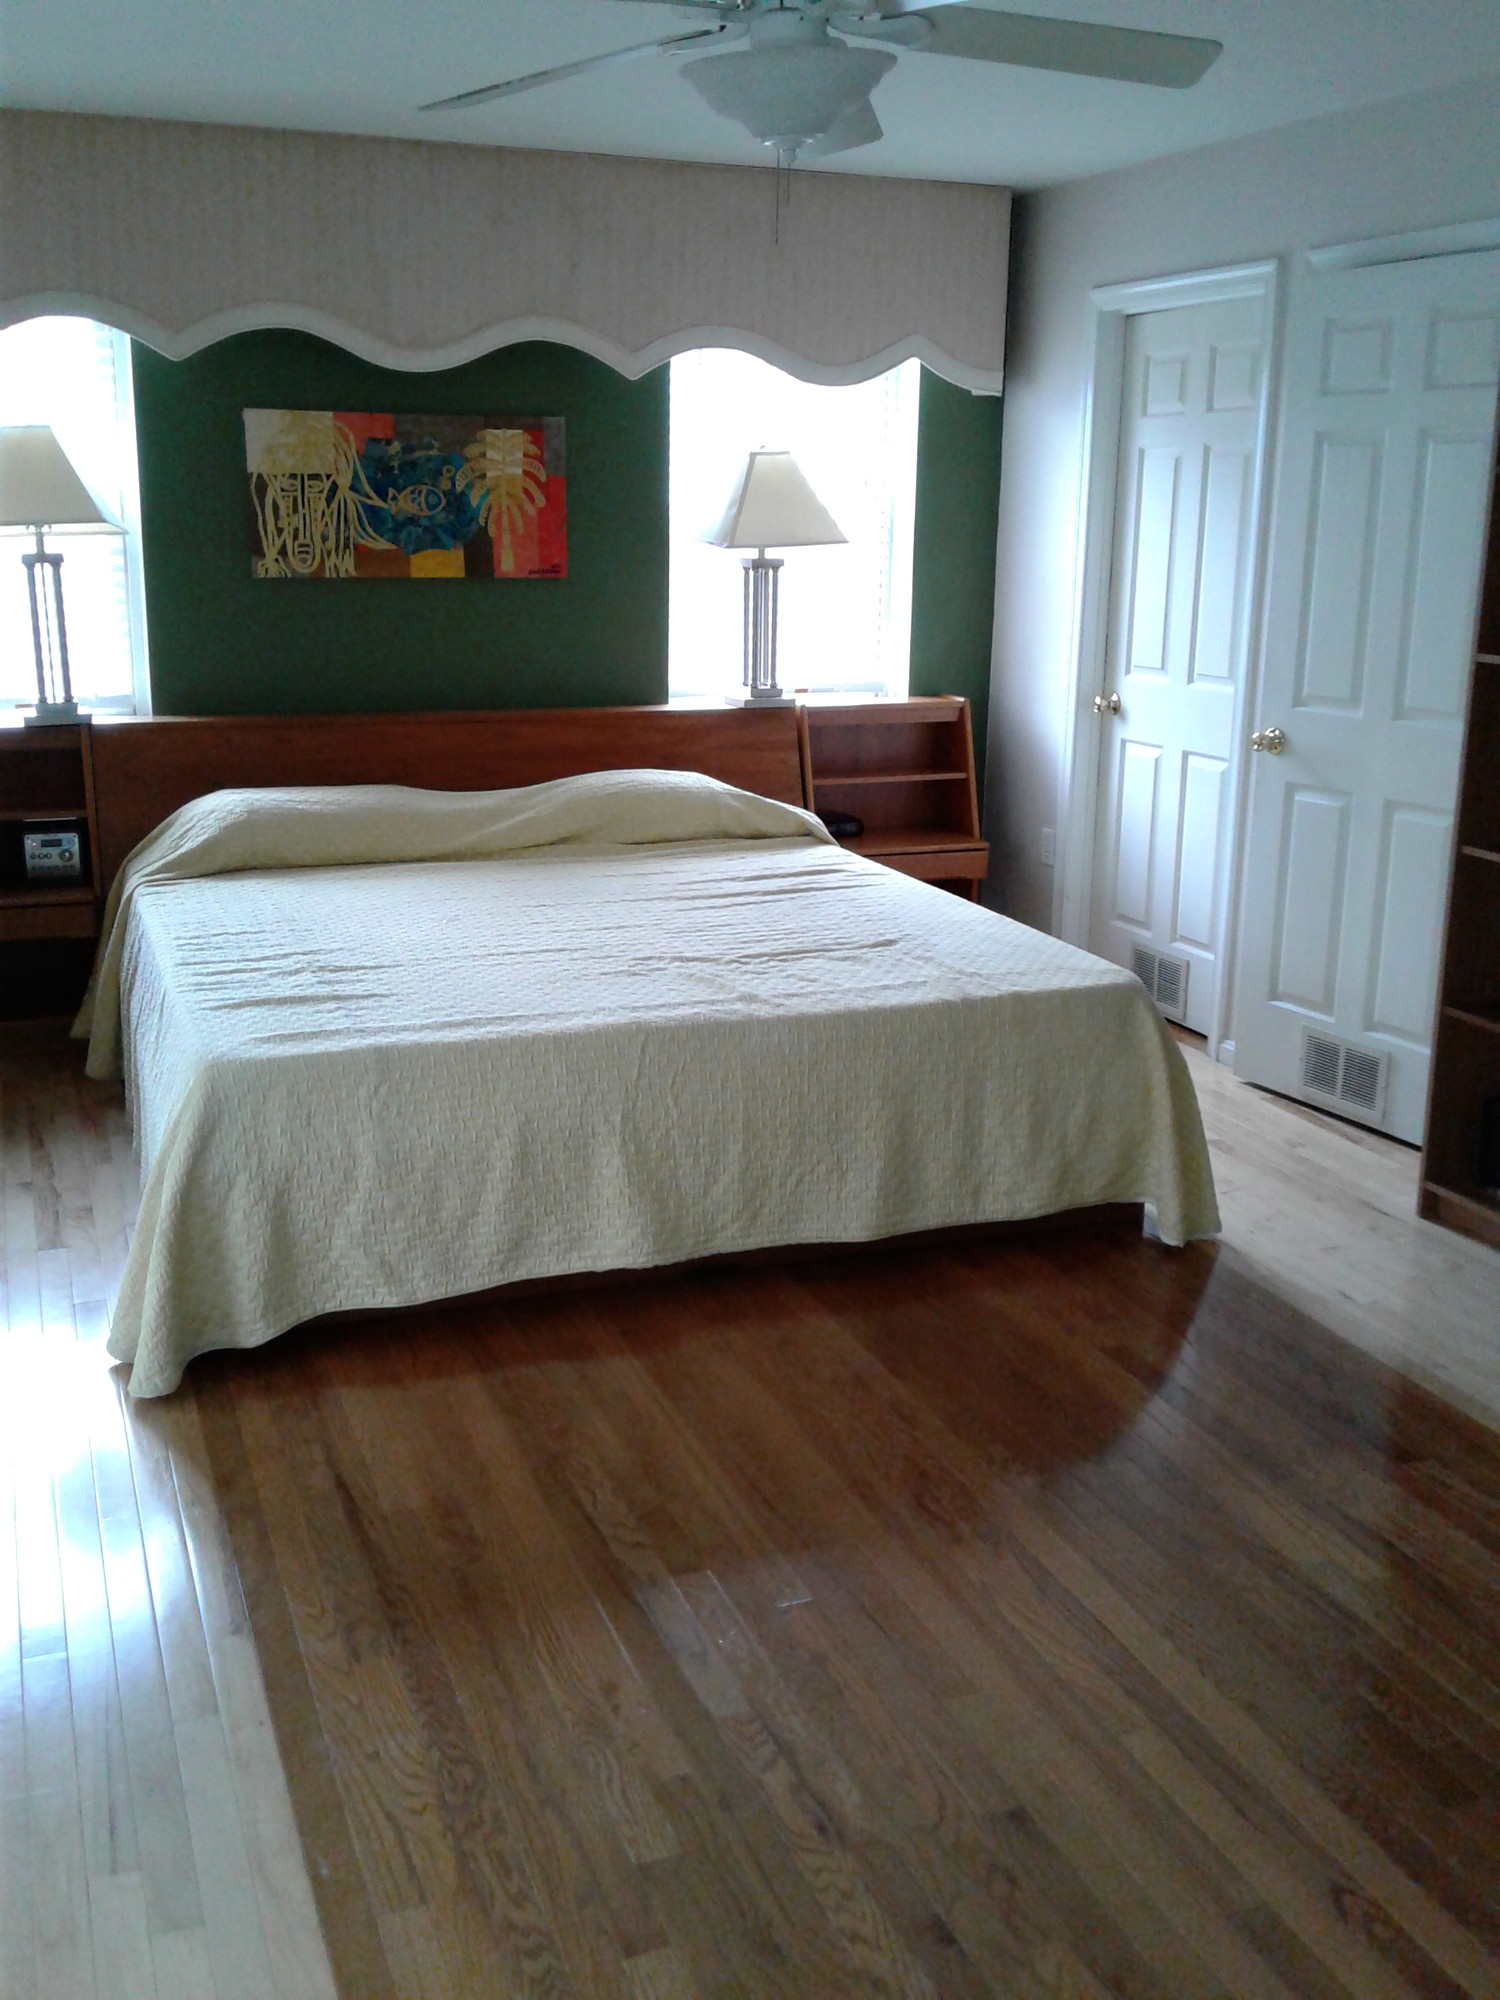 Fully Furnished Master Bedroom Suite 10 minute walk to PG Plaza Metro